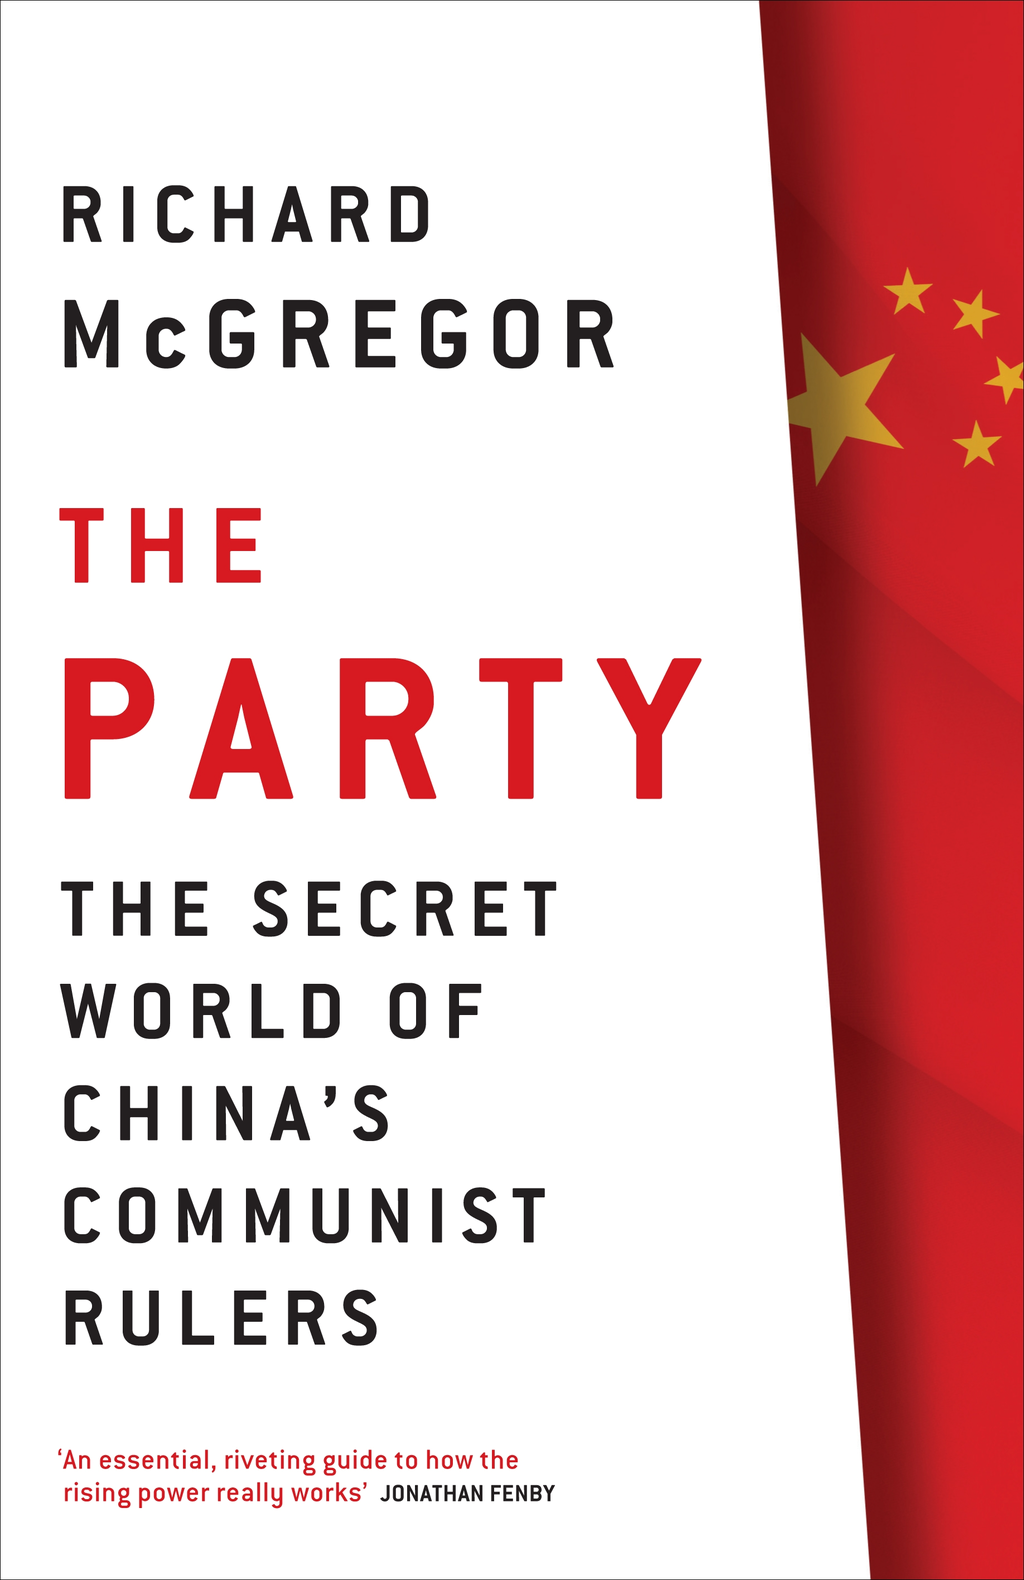 The Party The Secret World of China's Communist Rulers